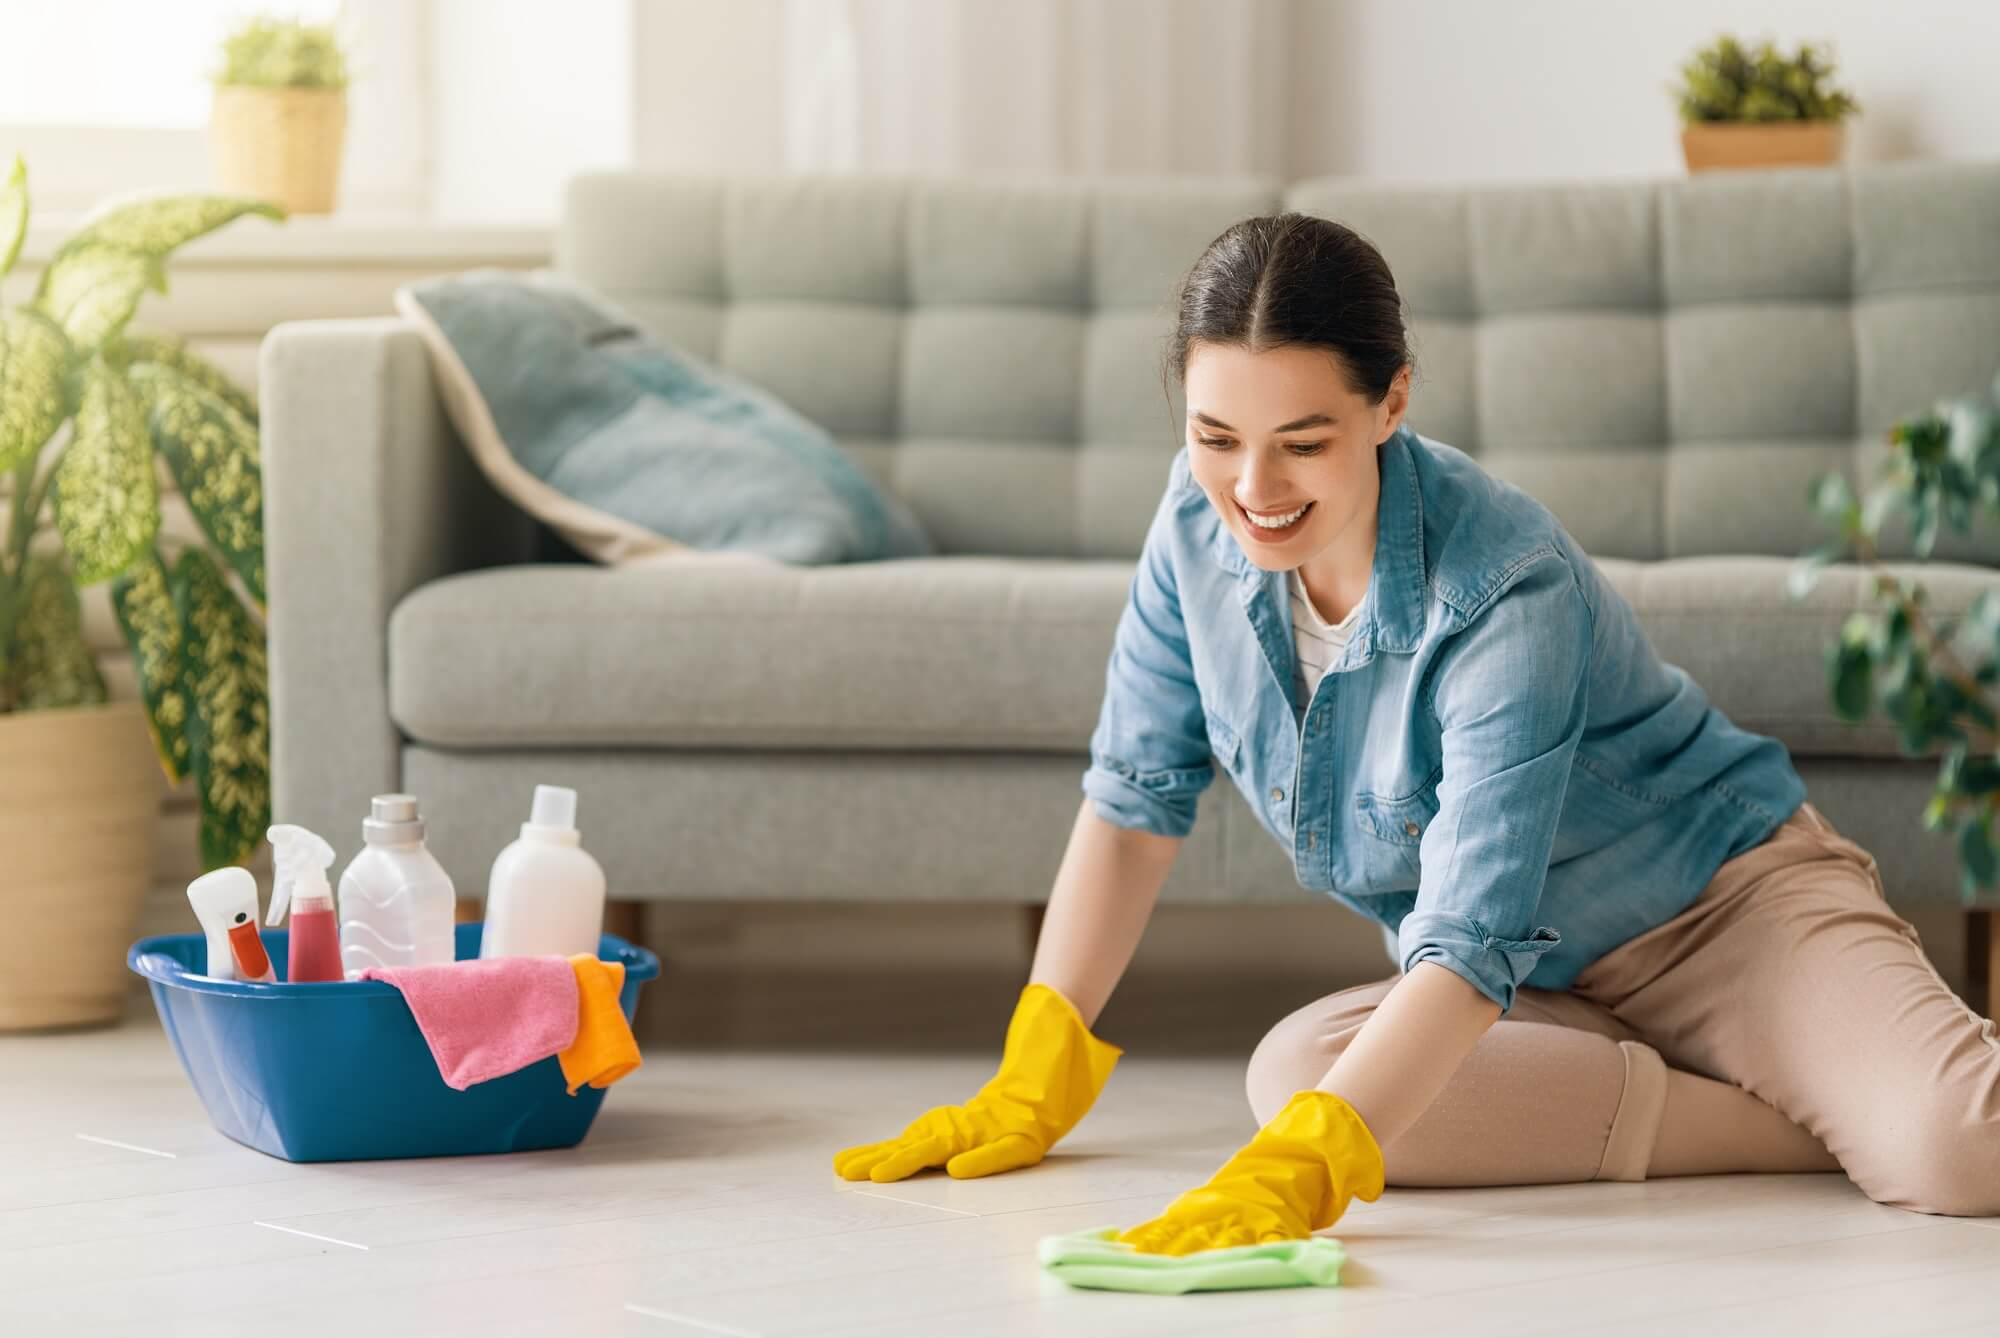 house cleaning services in process by women